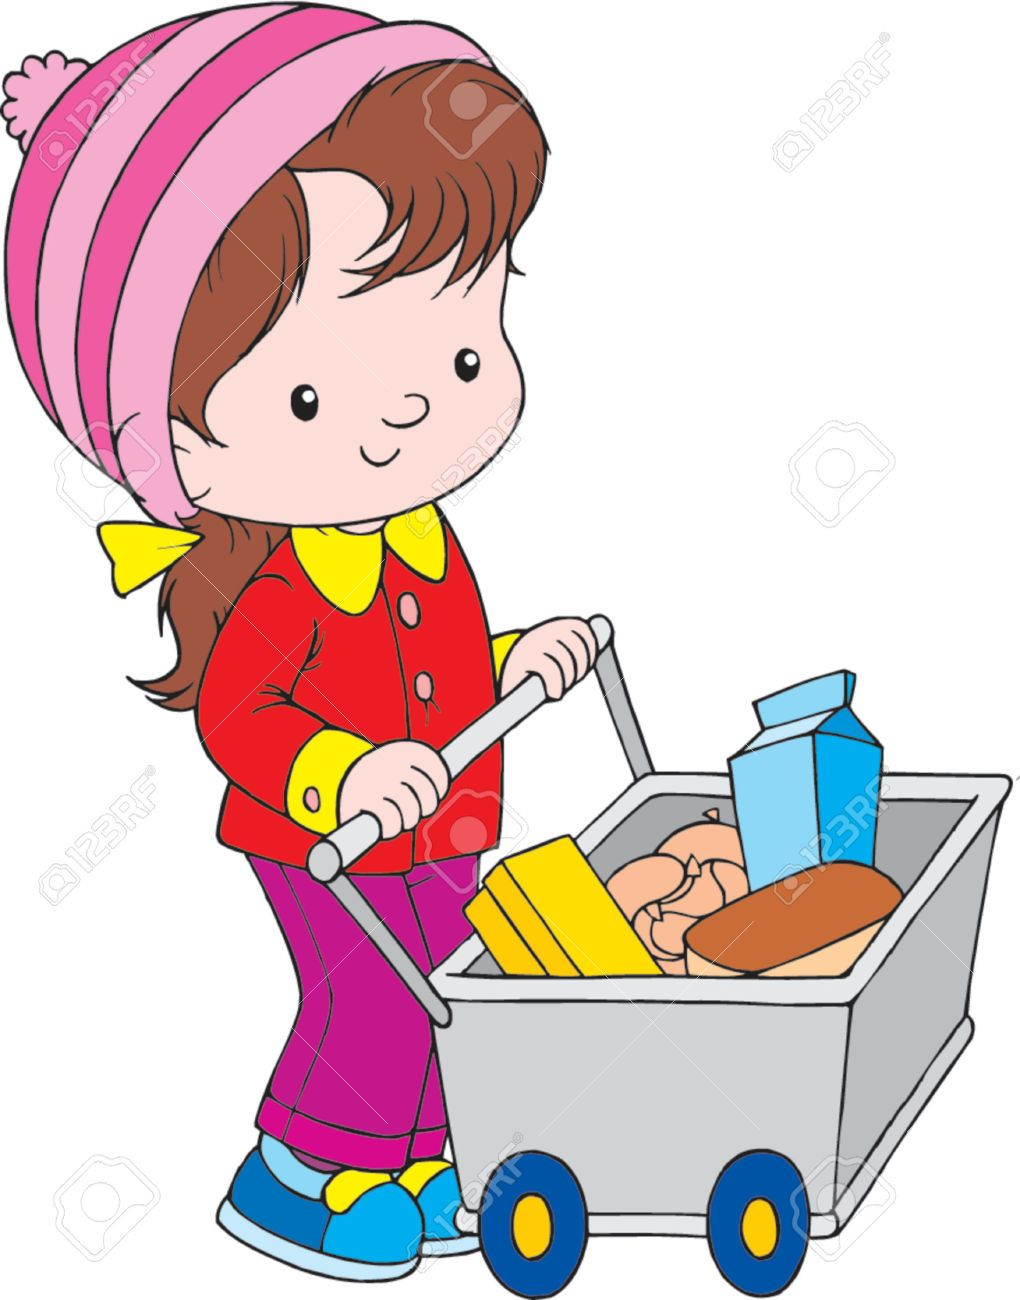 Shopping clipart for kids 3 » Clipart Portal.